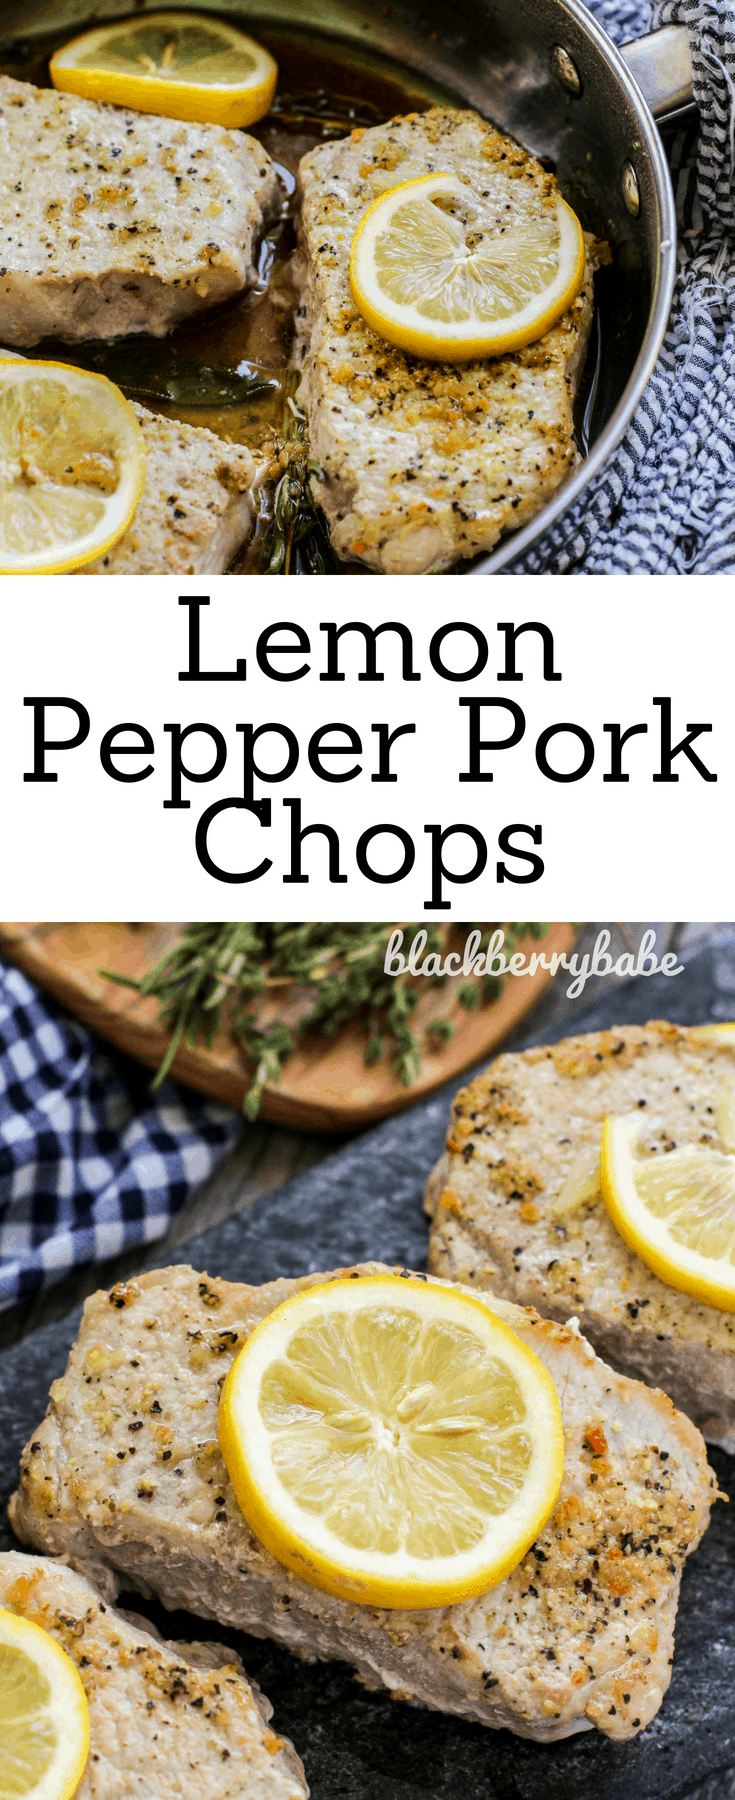 Lemon Pepper Pork Chops | Grilled Lemon Pepper Pork Chops | Stovetop Lemon Pepper Pork Chops | Baked Lemon Pepper Pork Chops | Keto Pork Chops | Paleo Pork Chops | Lemon Pork Chops | Easy Pork Chops #lemon #lemonpepper #porkchop #porkchops #ketorecipe